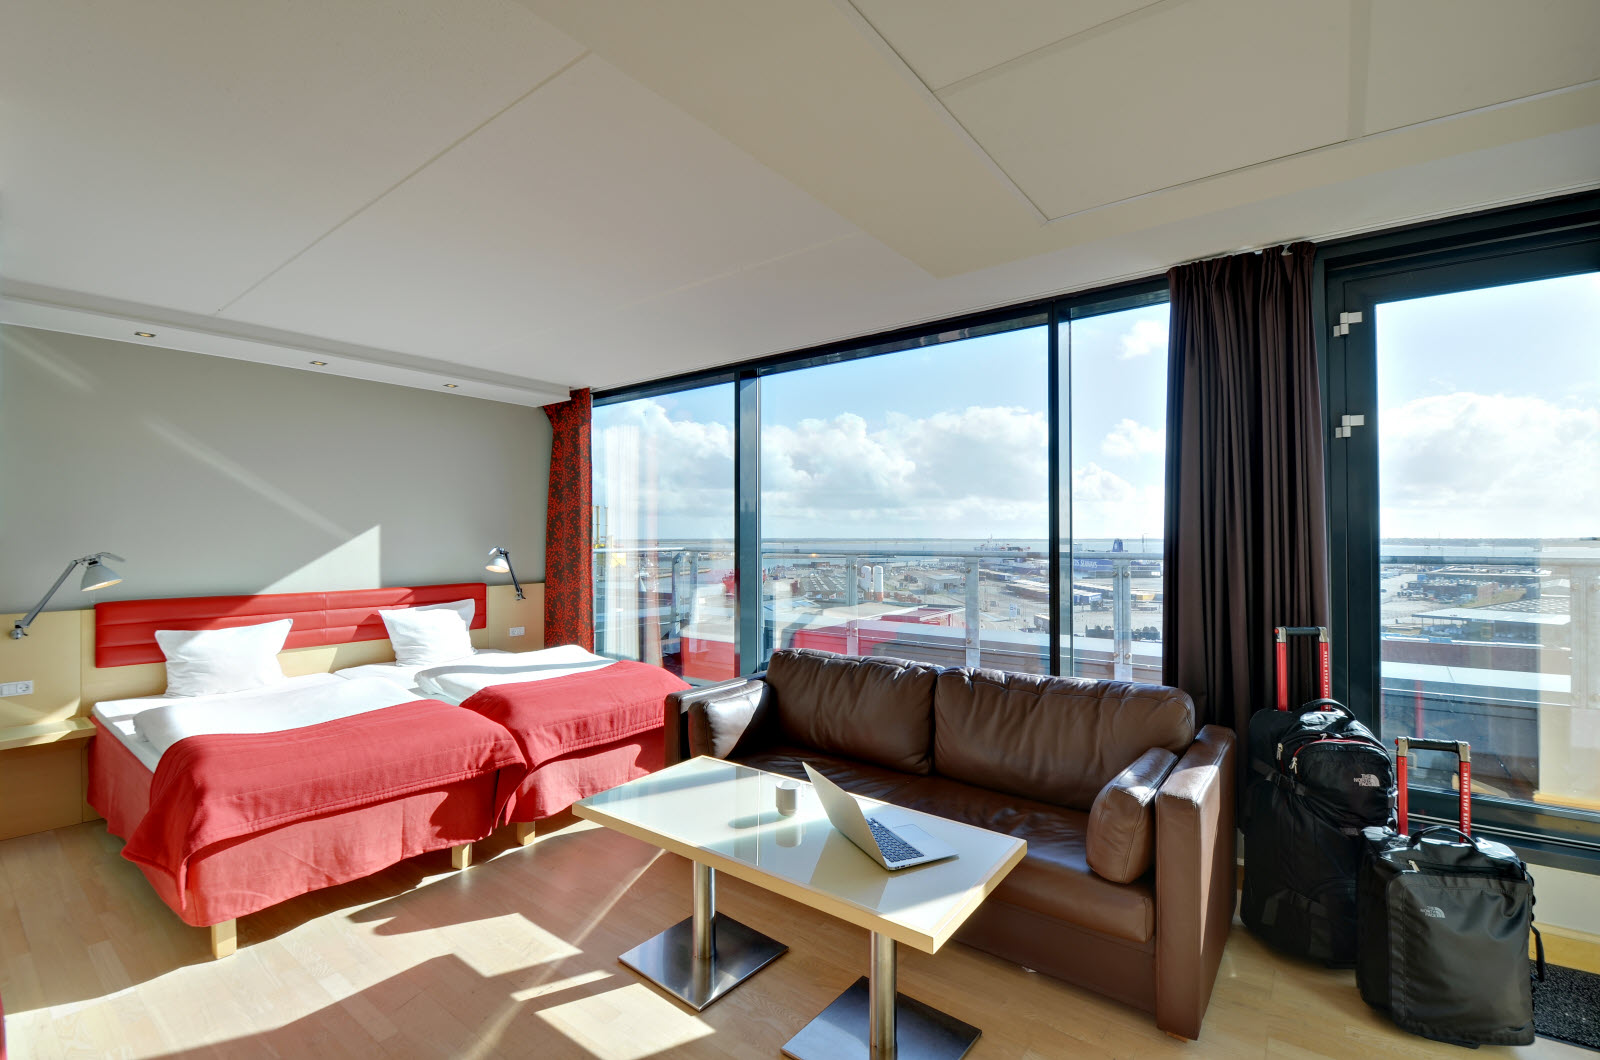 Juniorsuite, Scandic Olympic